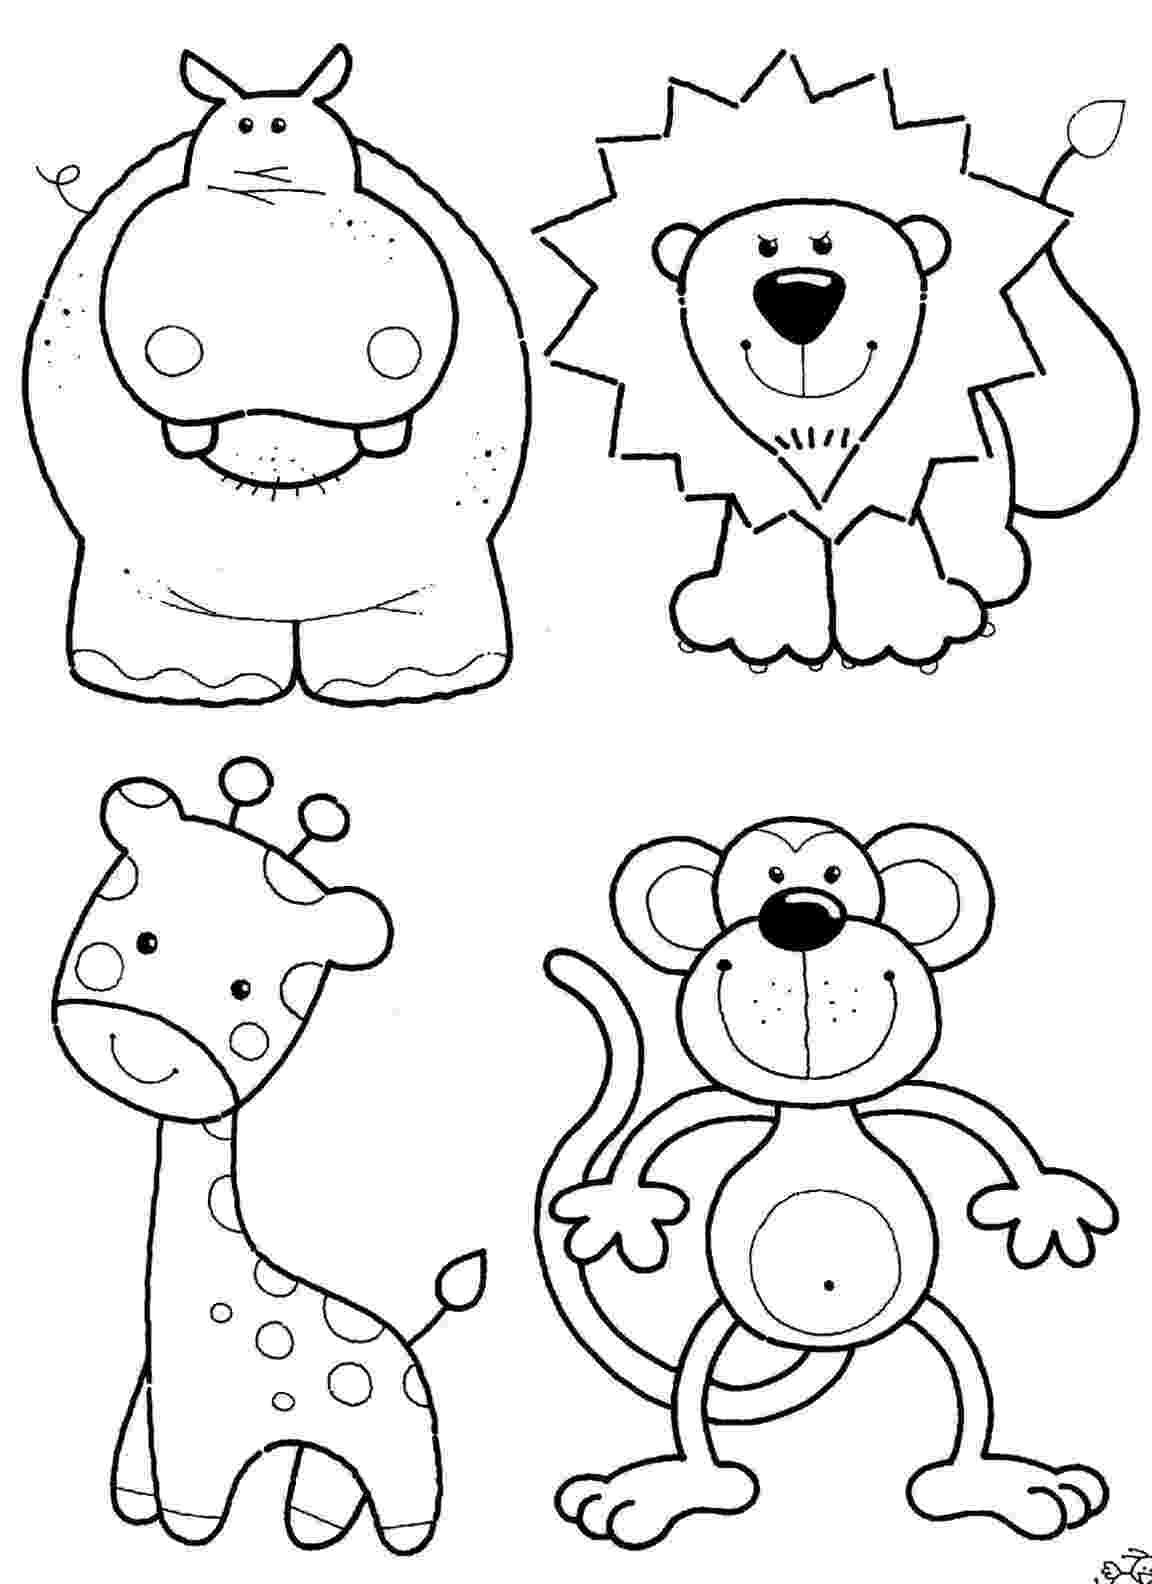 jungle animals coloring pages for toddlers jungle animal coloring pages to download and print for free animals coloring pages jungle for toddlers